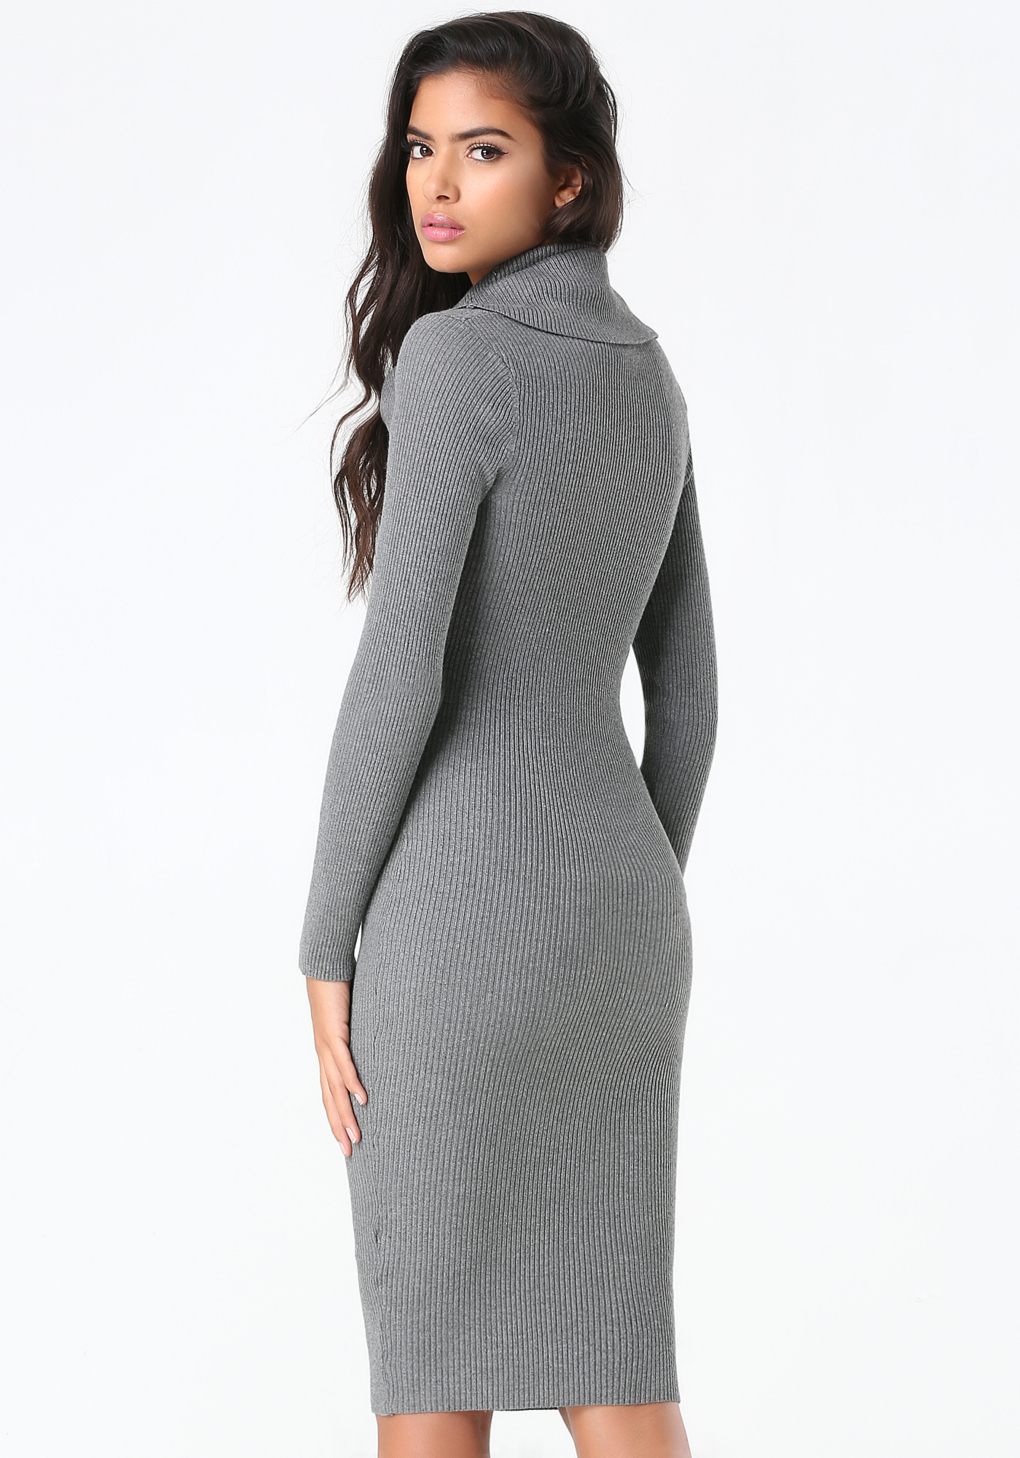 Bebe Cowl Neck Sweater Dress in Gray | Lyst